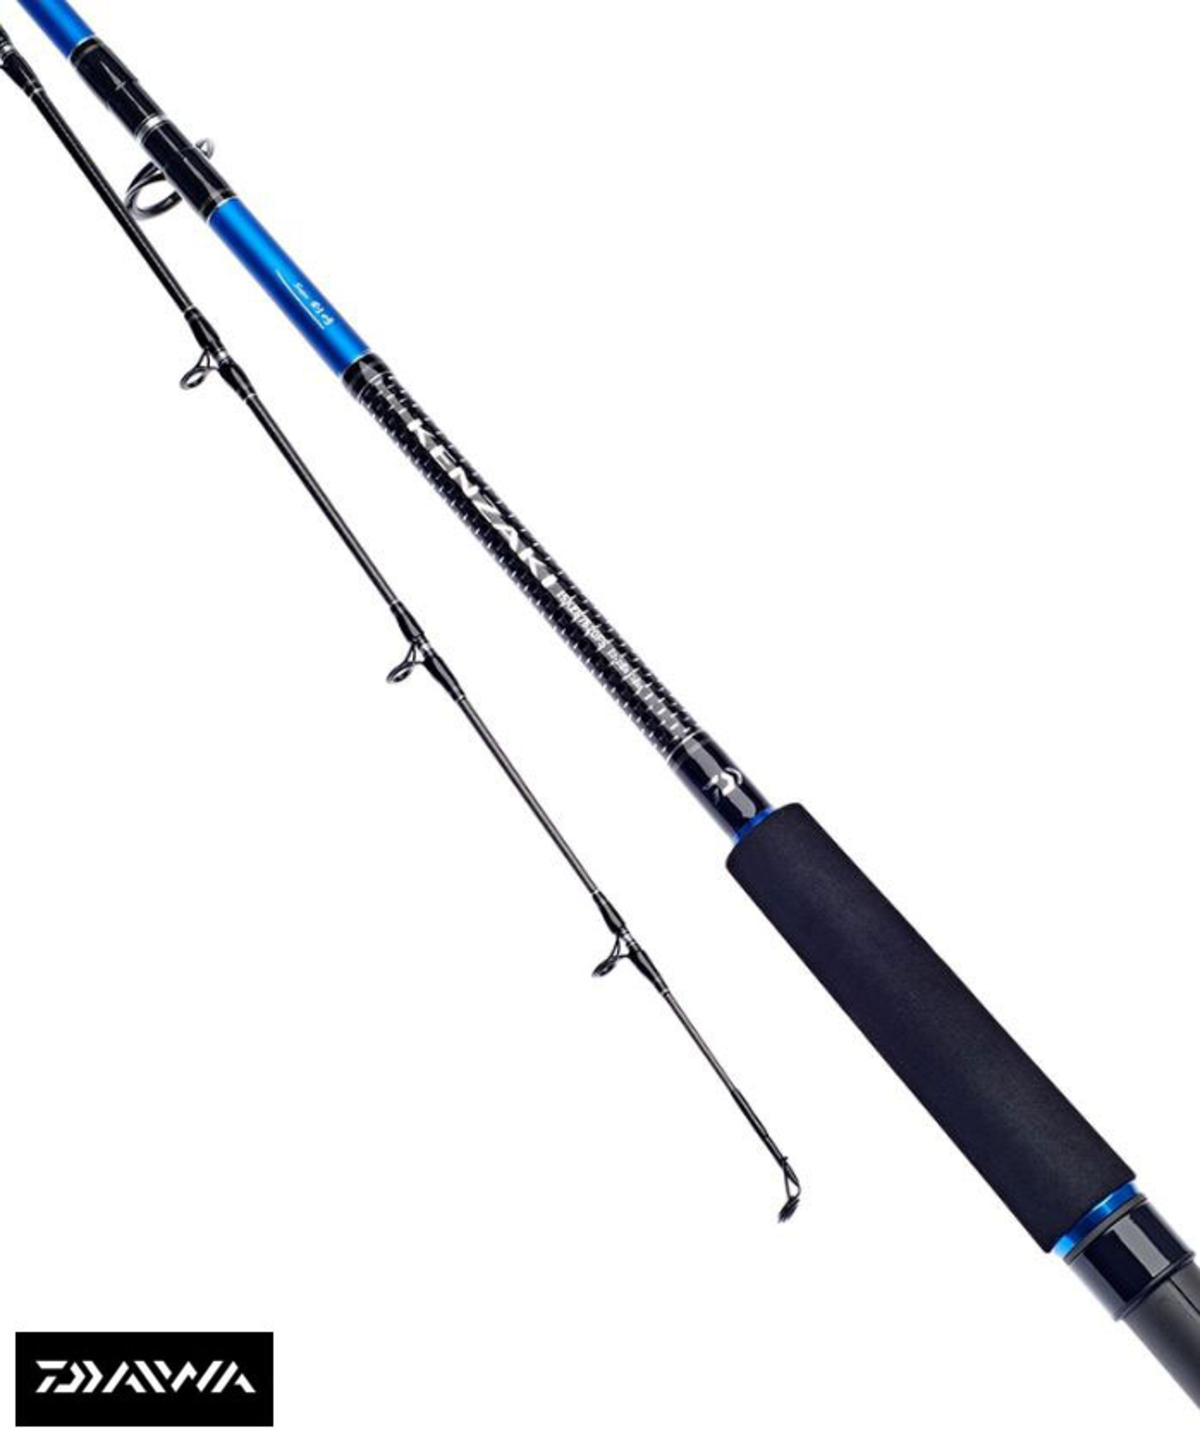 New Daiwa Super Kenzaki Boat 'Fixed Spool' Fishing Rod - All Sizes / Models